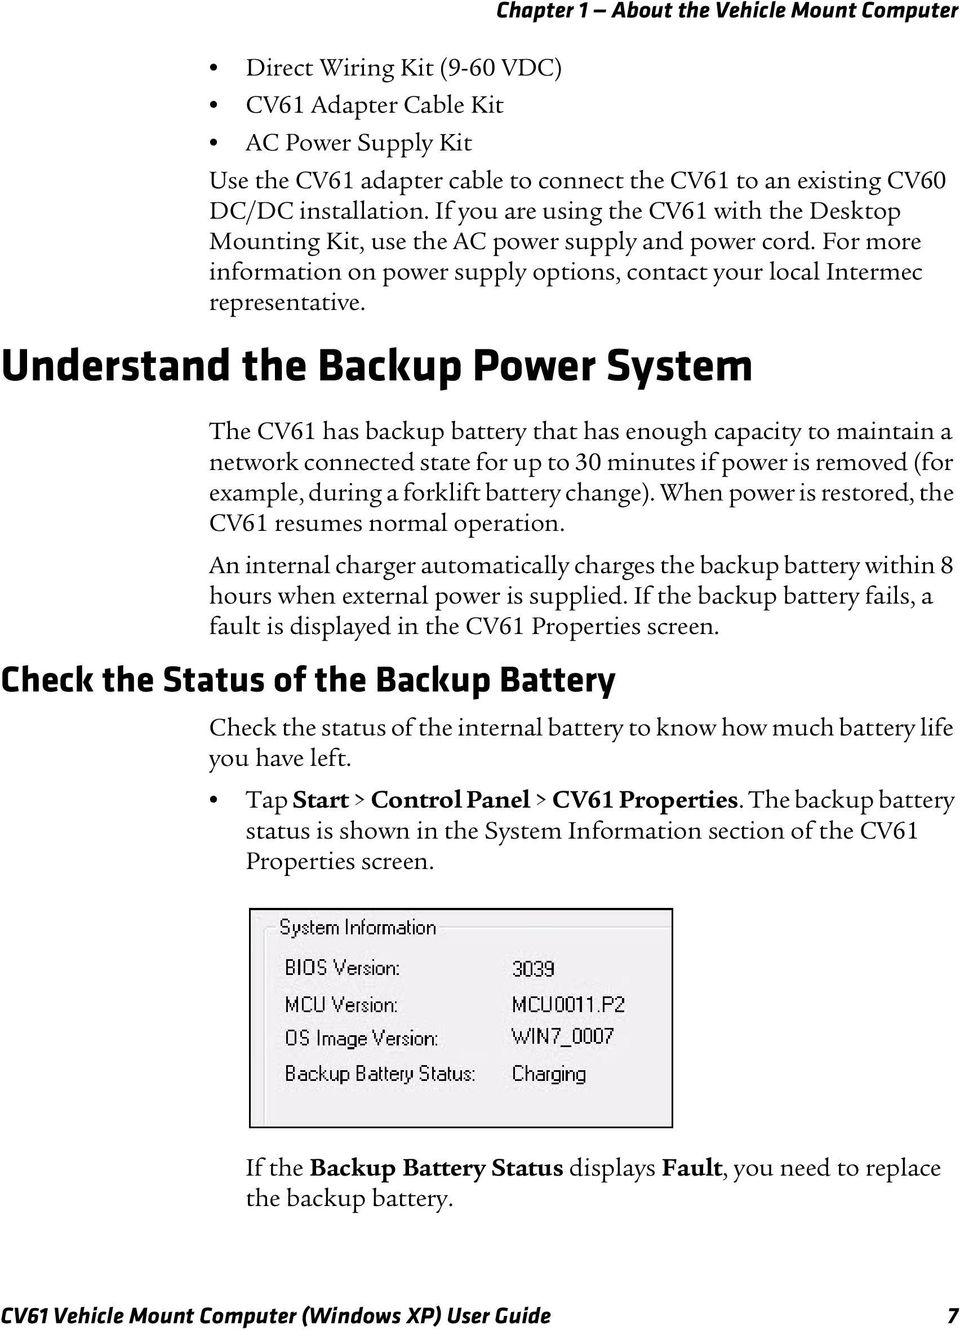 Understand the Backup Power System The CV61 has backup battery that has enough capacity to maintain a network connected state for up to 30 minutes if power is removed (for example, during a forklift